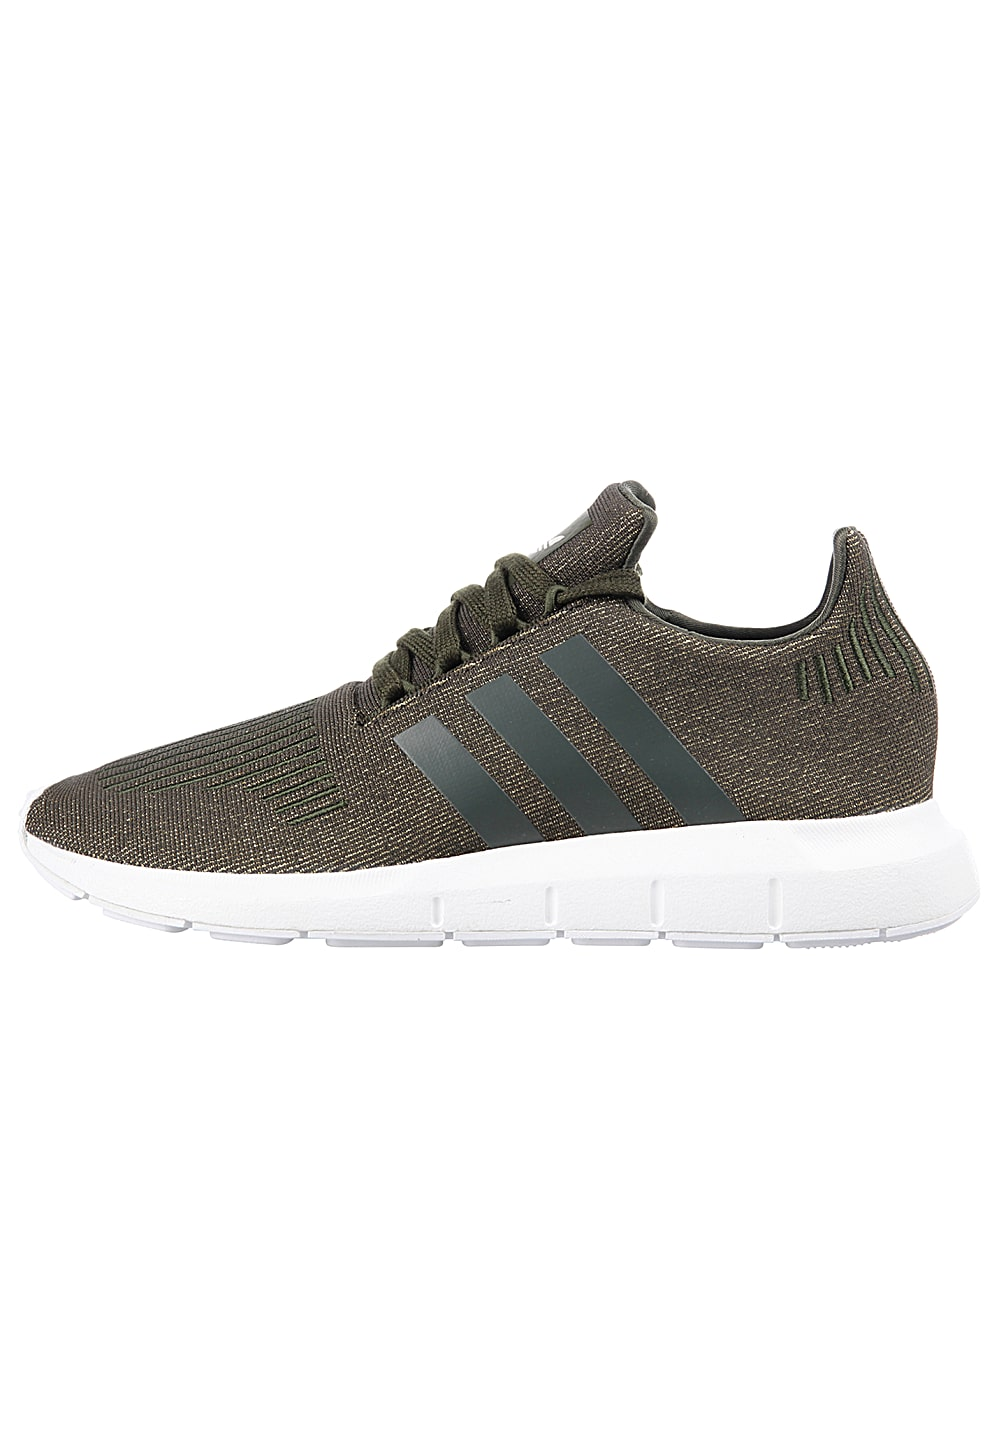 adidas Originals Swift Run - Sneaker für Damen - Grün